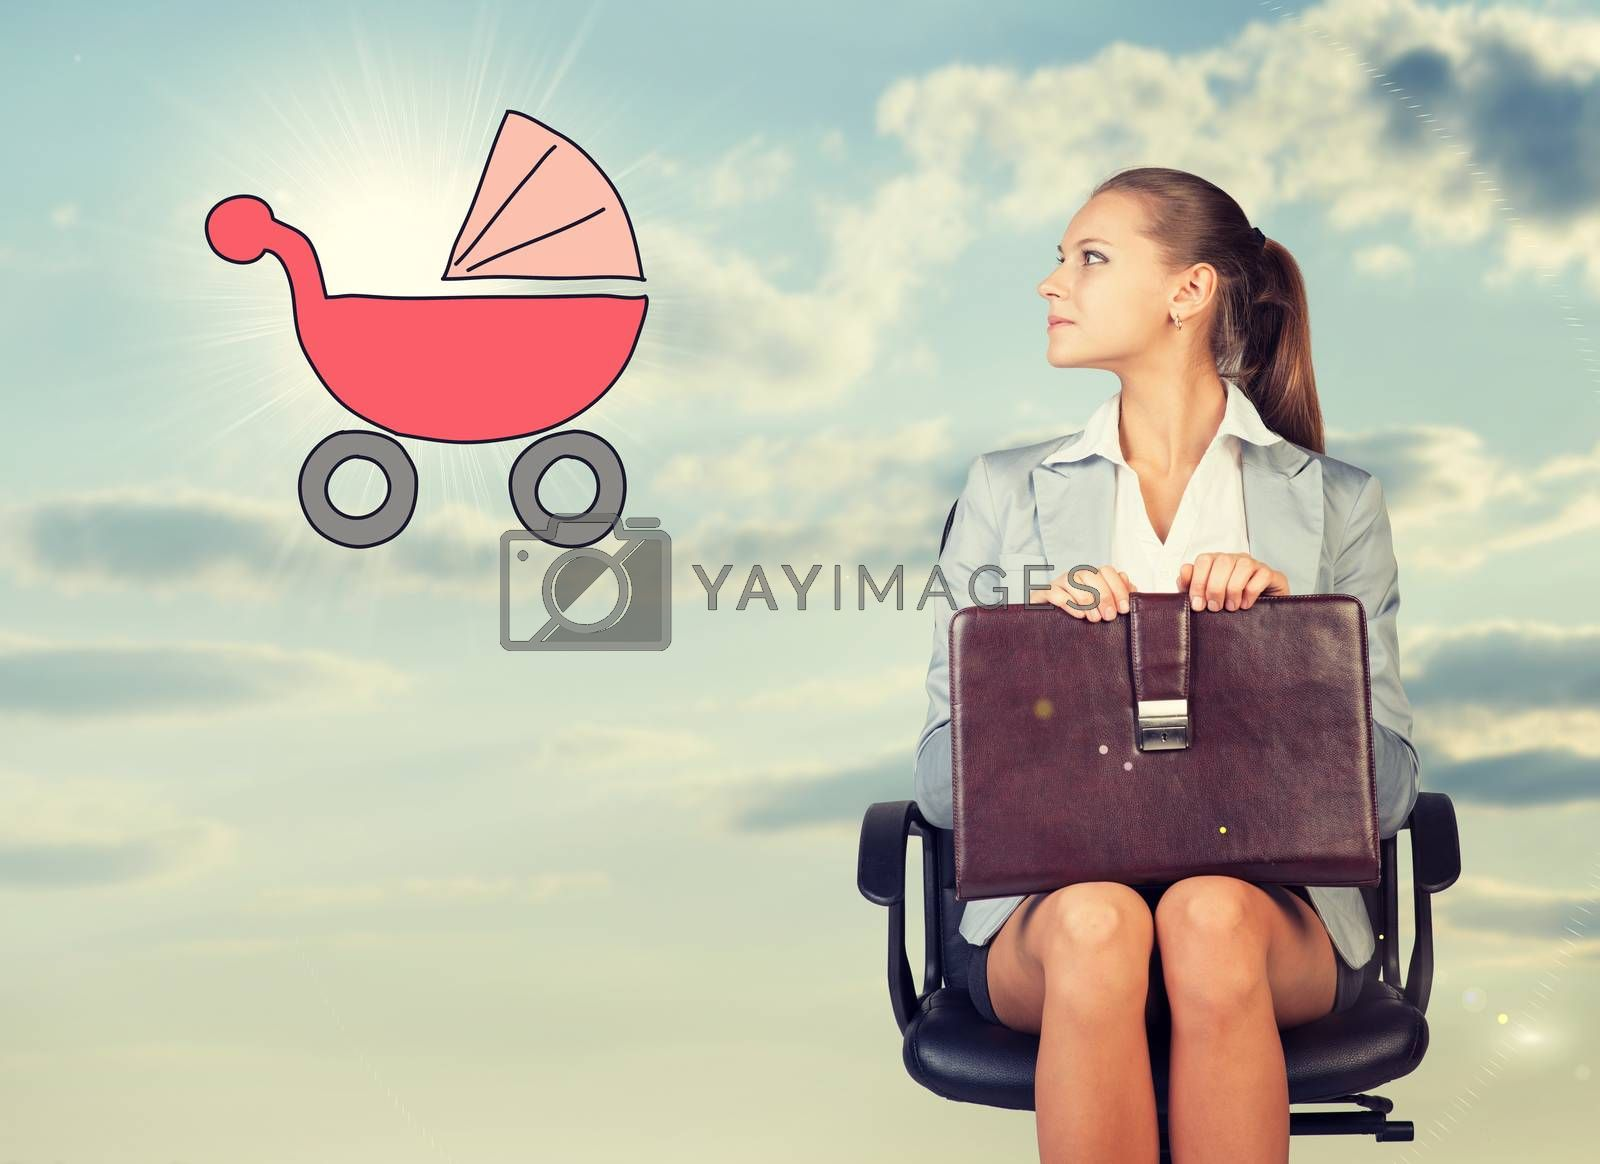 Business woman in skirt, blouse and jacket, sitting on chair and holding briefcase imagines buggy. Against background of sky and clouds